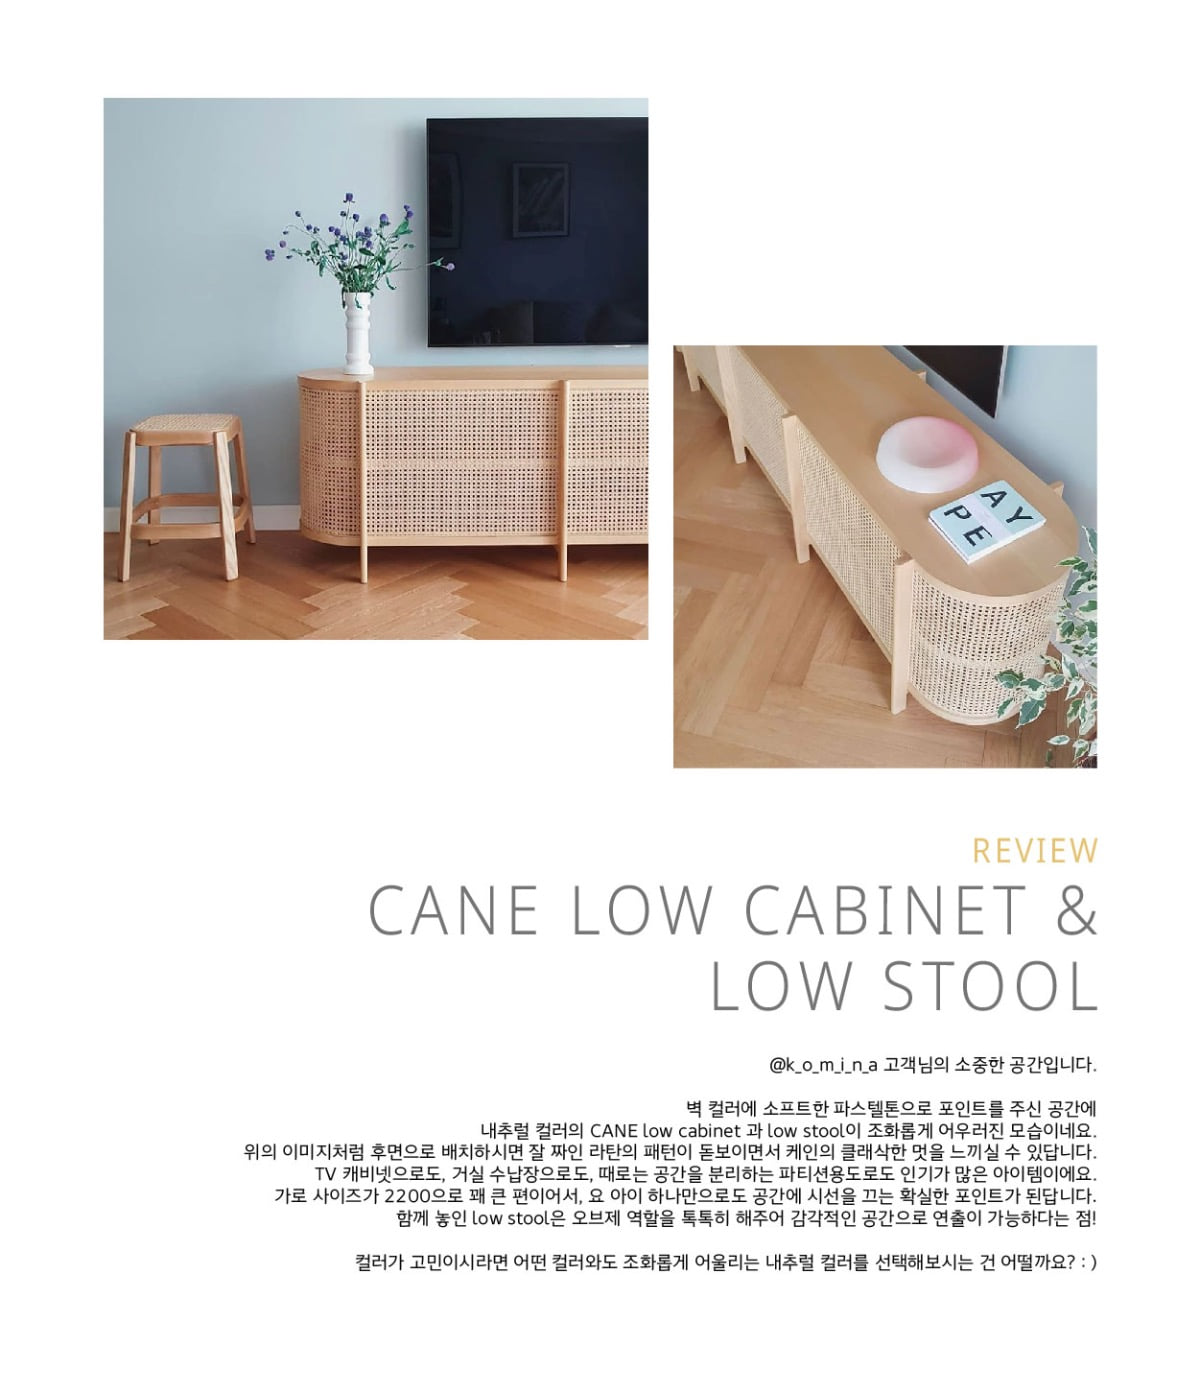 CANE low cabinet&low stool, natural